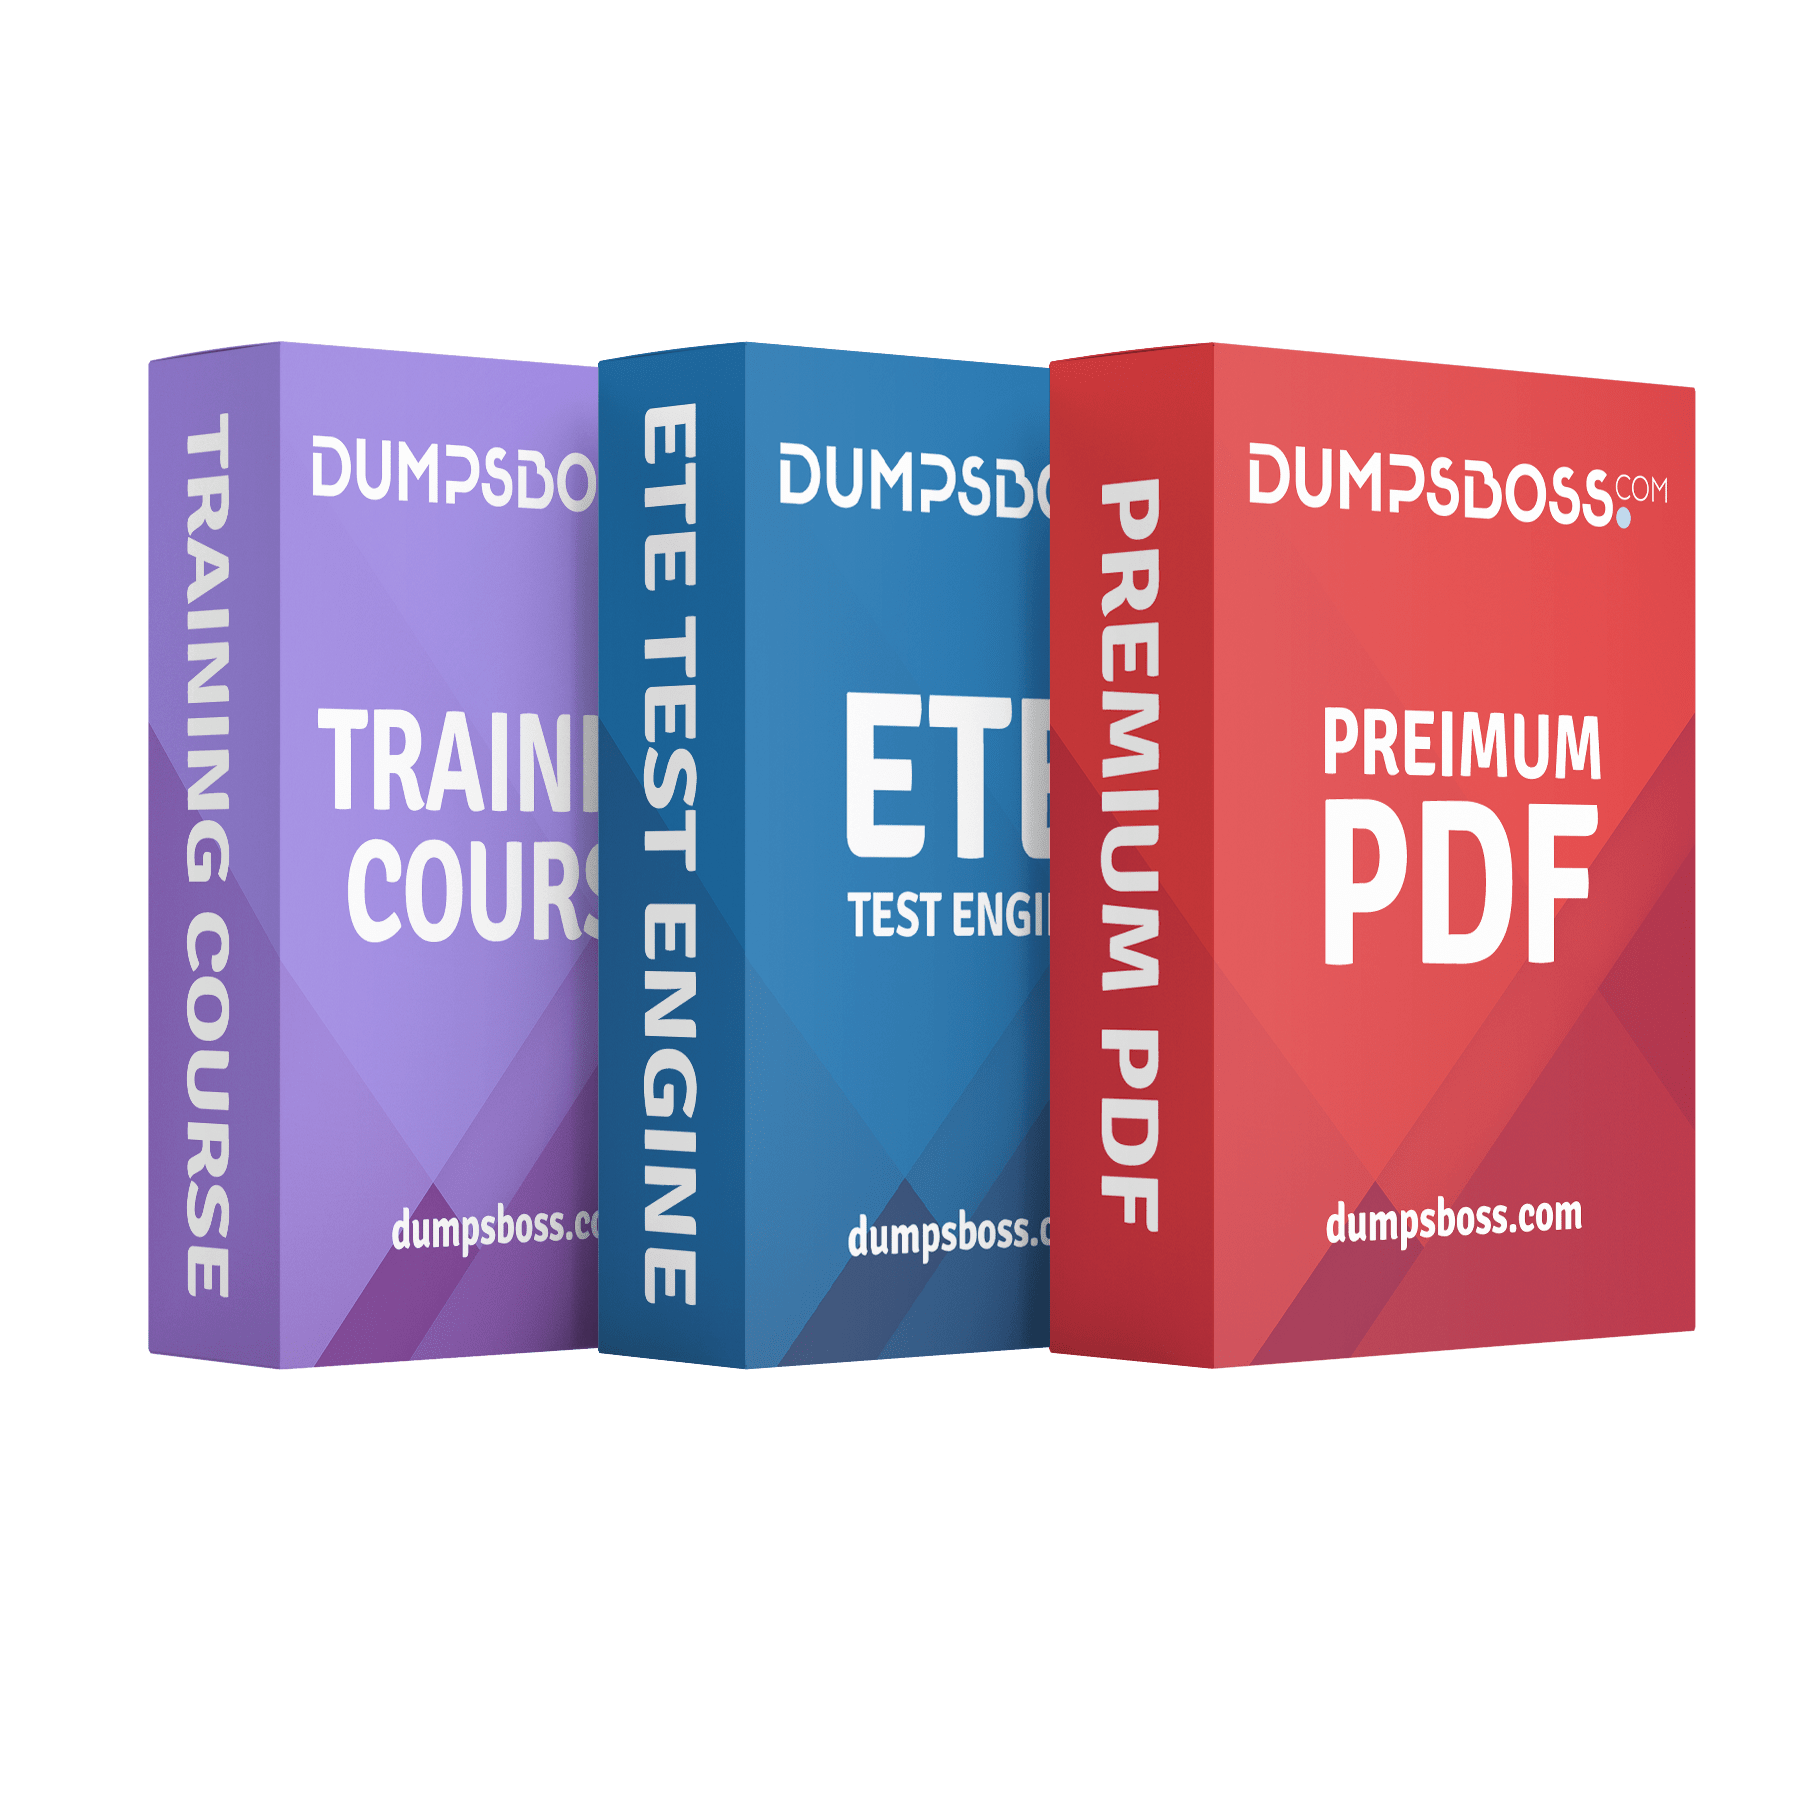 () PDF, Test Engine and Training Course